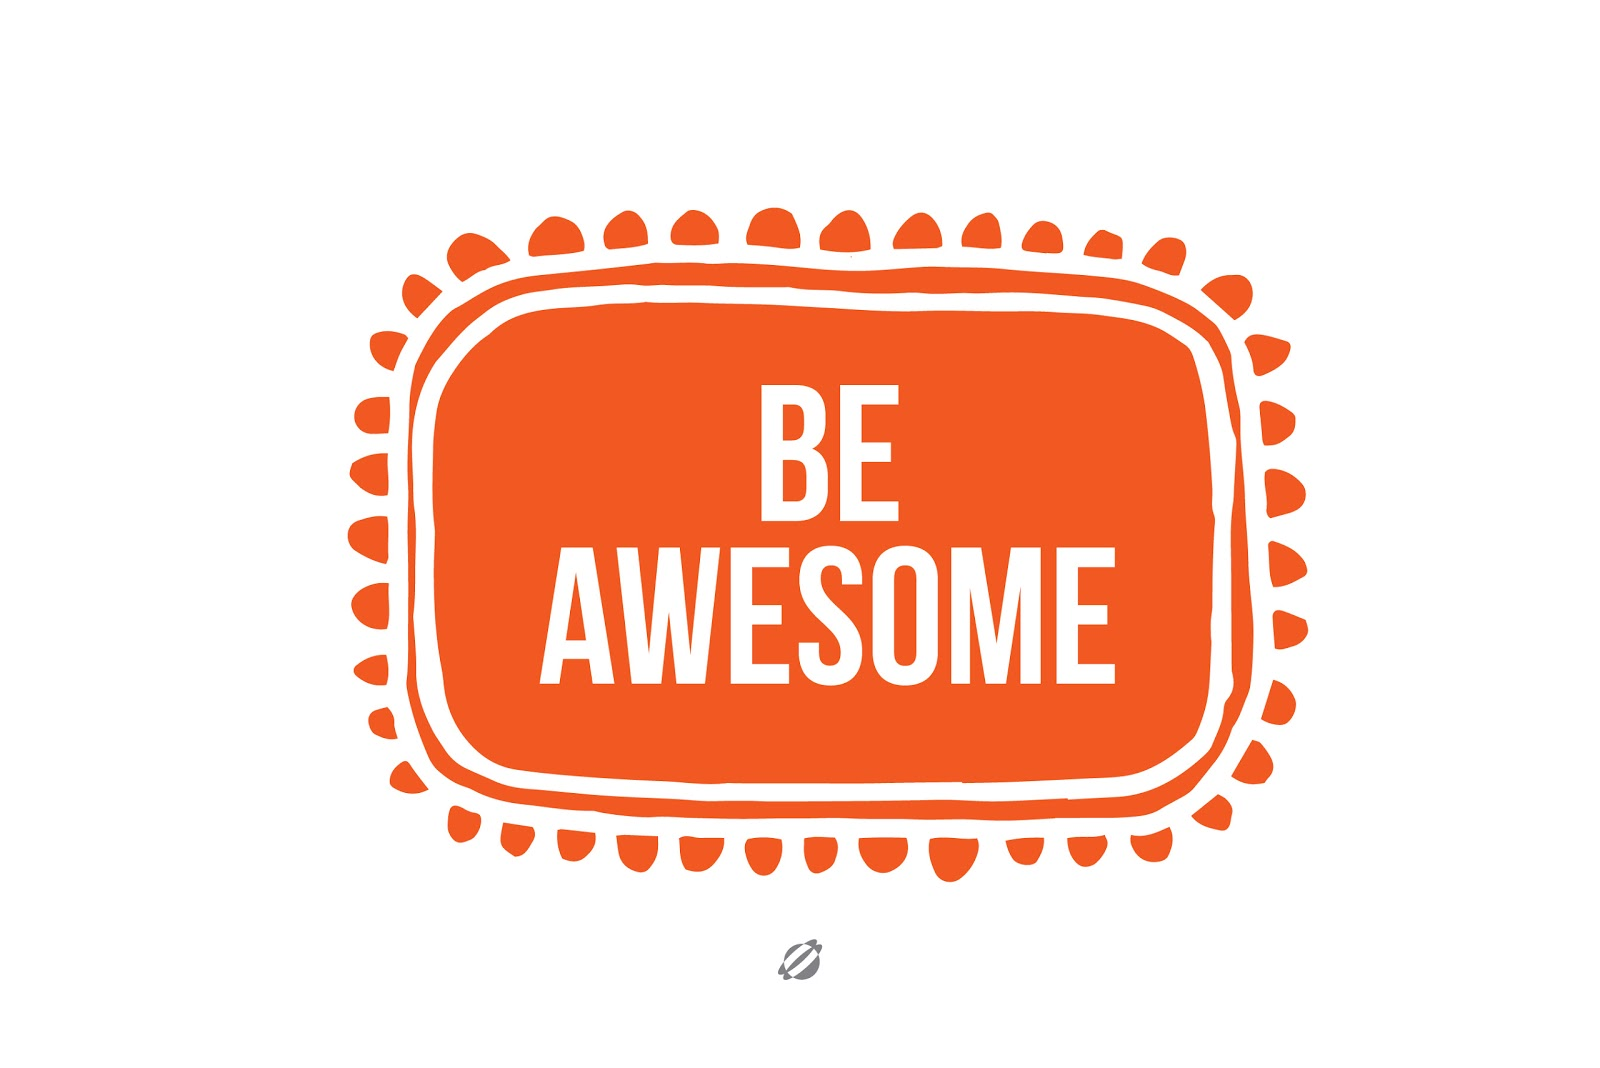 LostBumblebee 2013 BE AWESOME COLLECTION FREE PRINTABLE